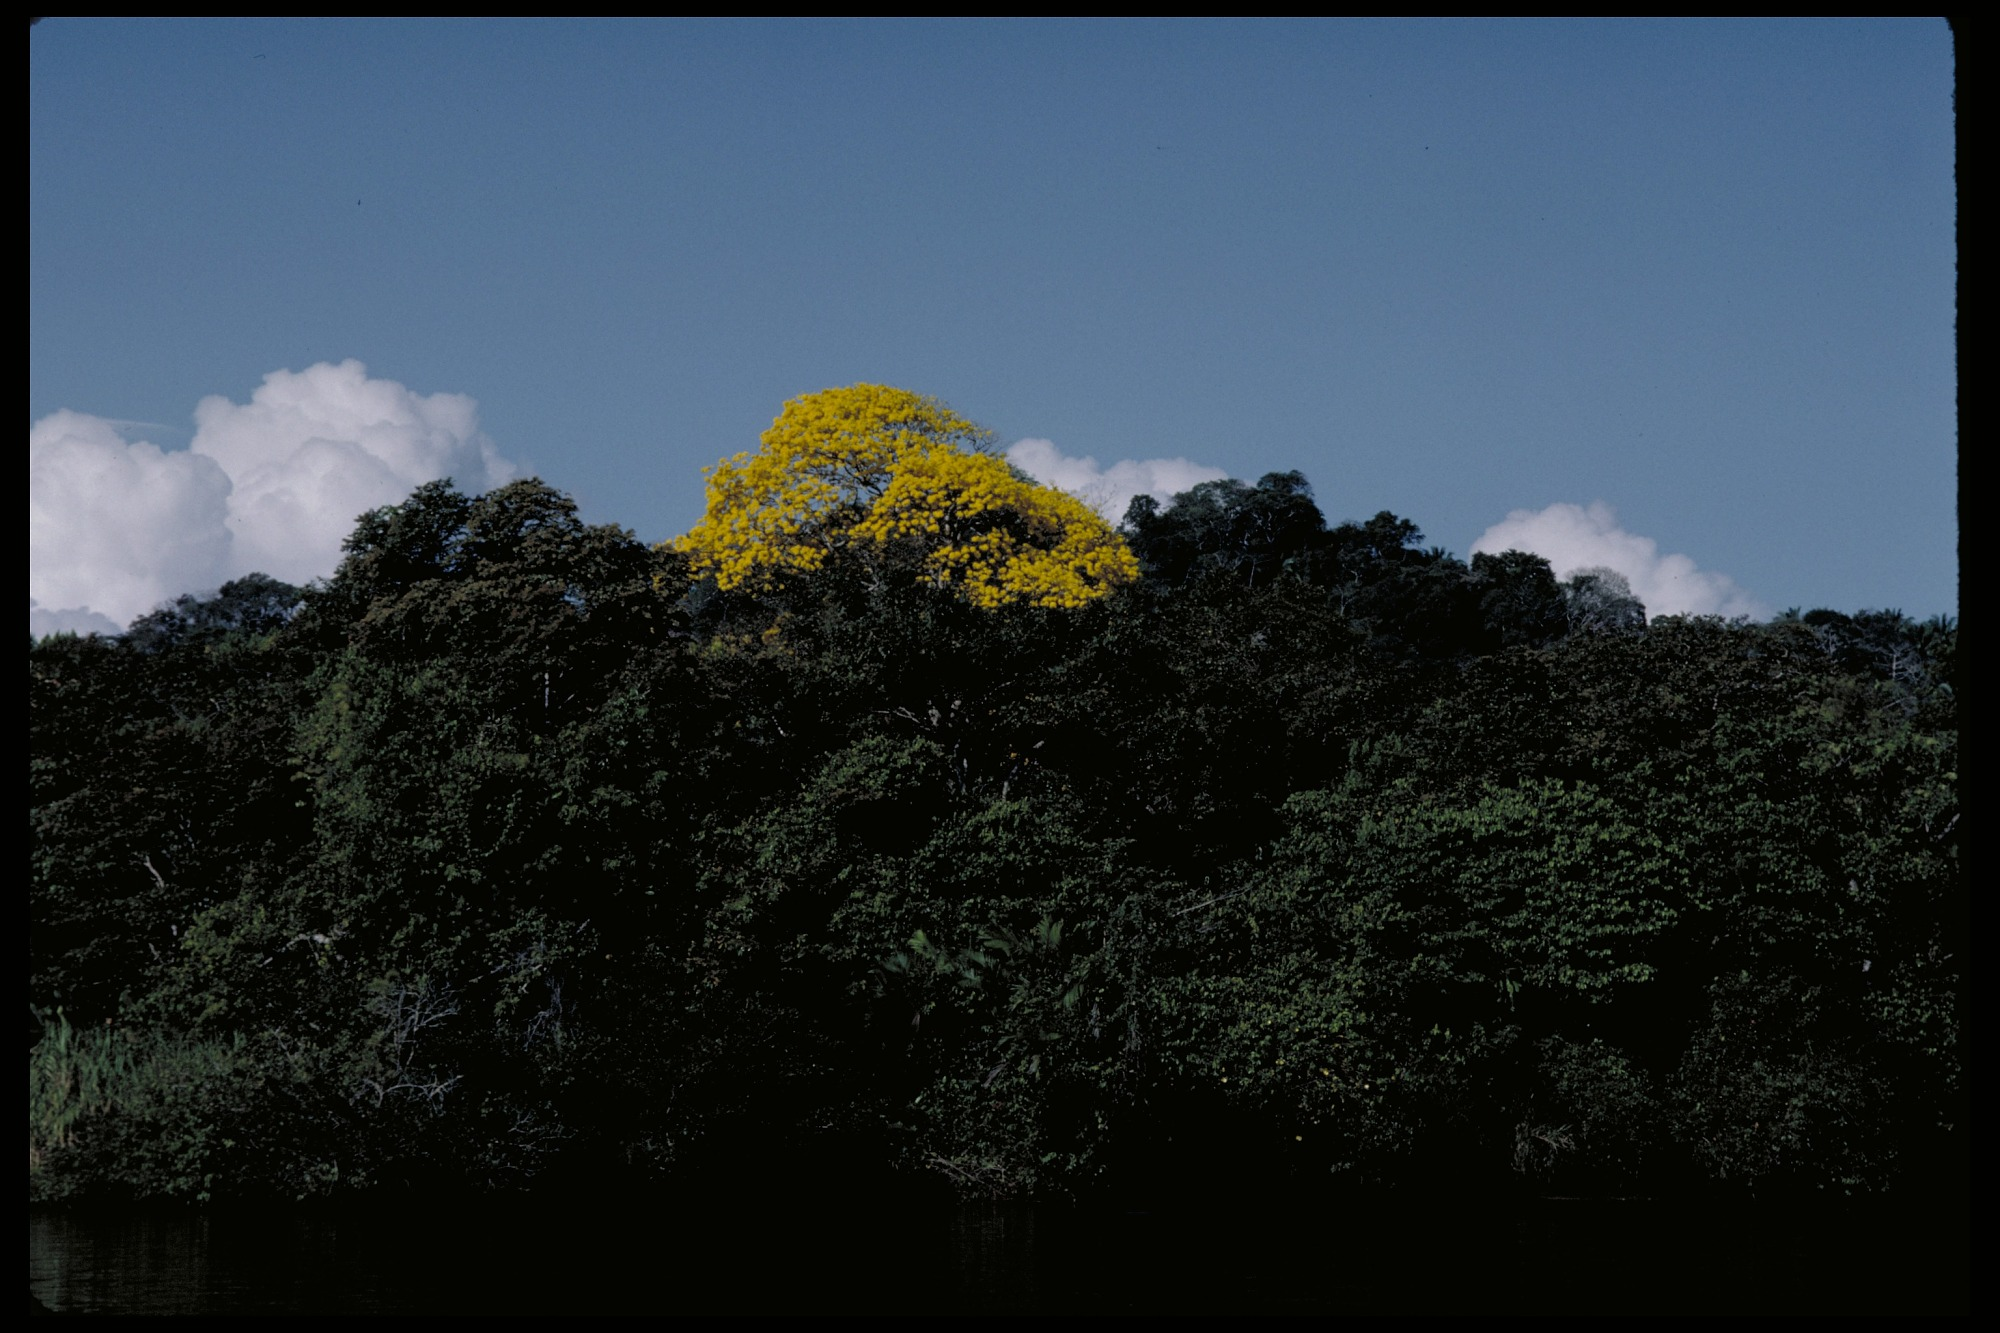 Flowering Trees, Panama, STRI, 1986, Smithsonian Institution Archives, SIA Acc. 11-009 [88-7053].